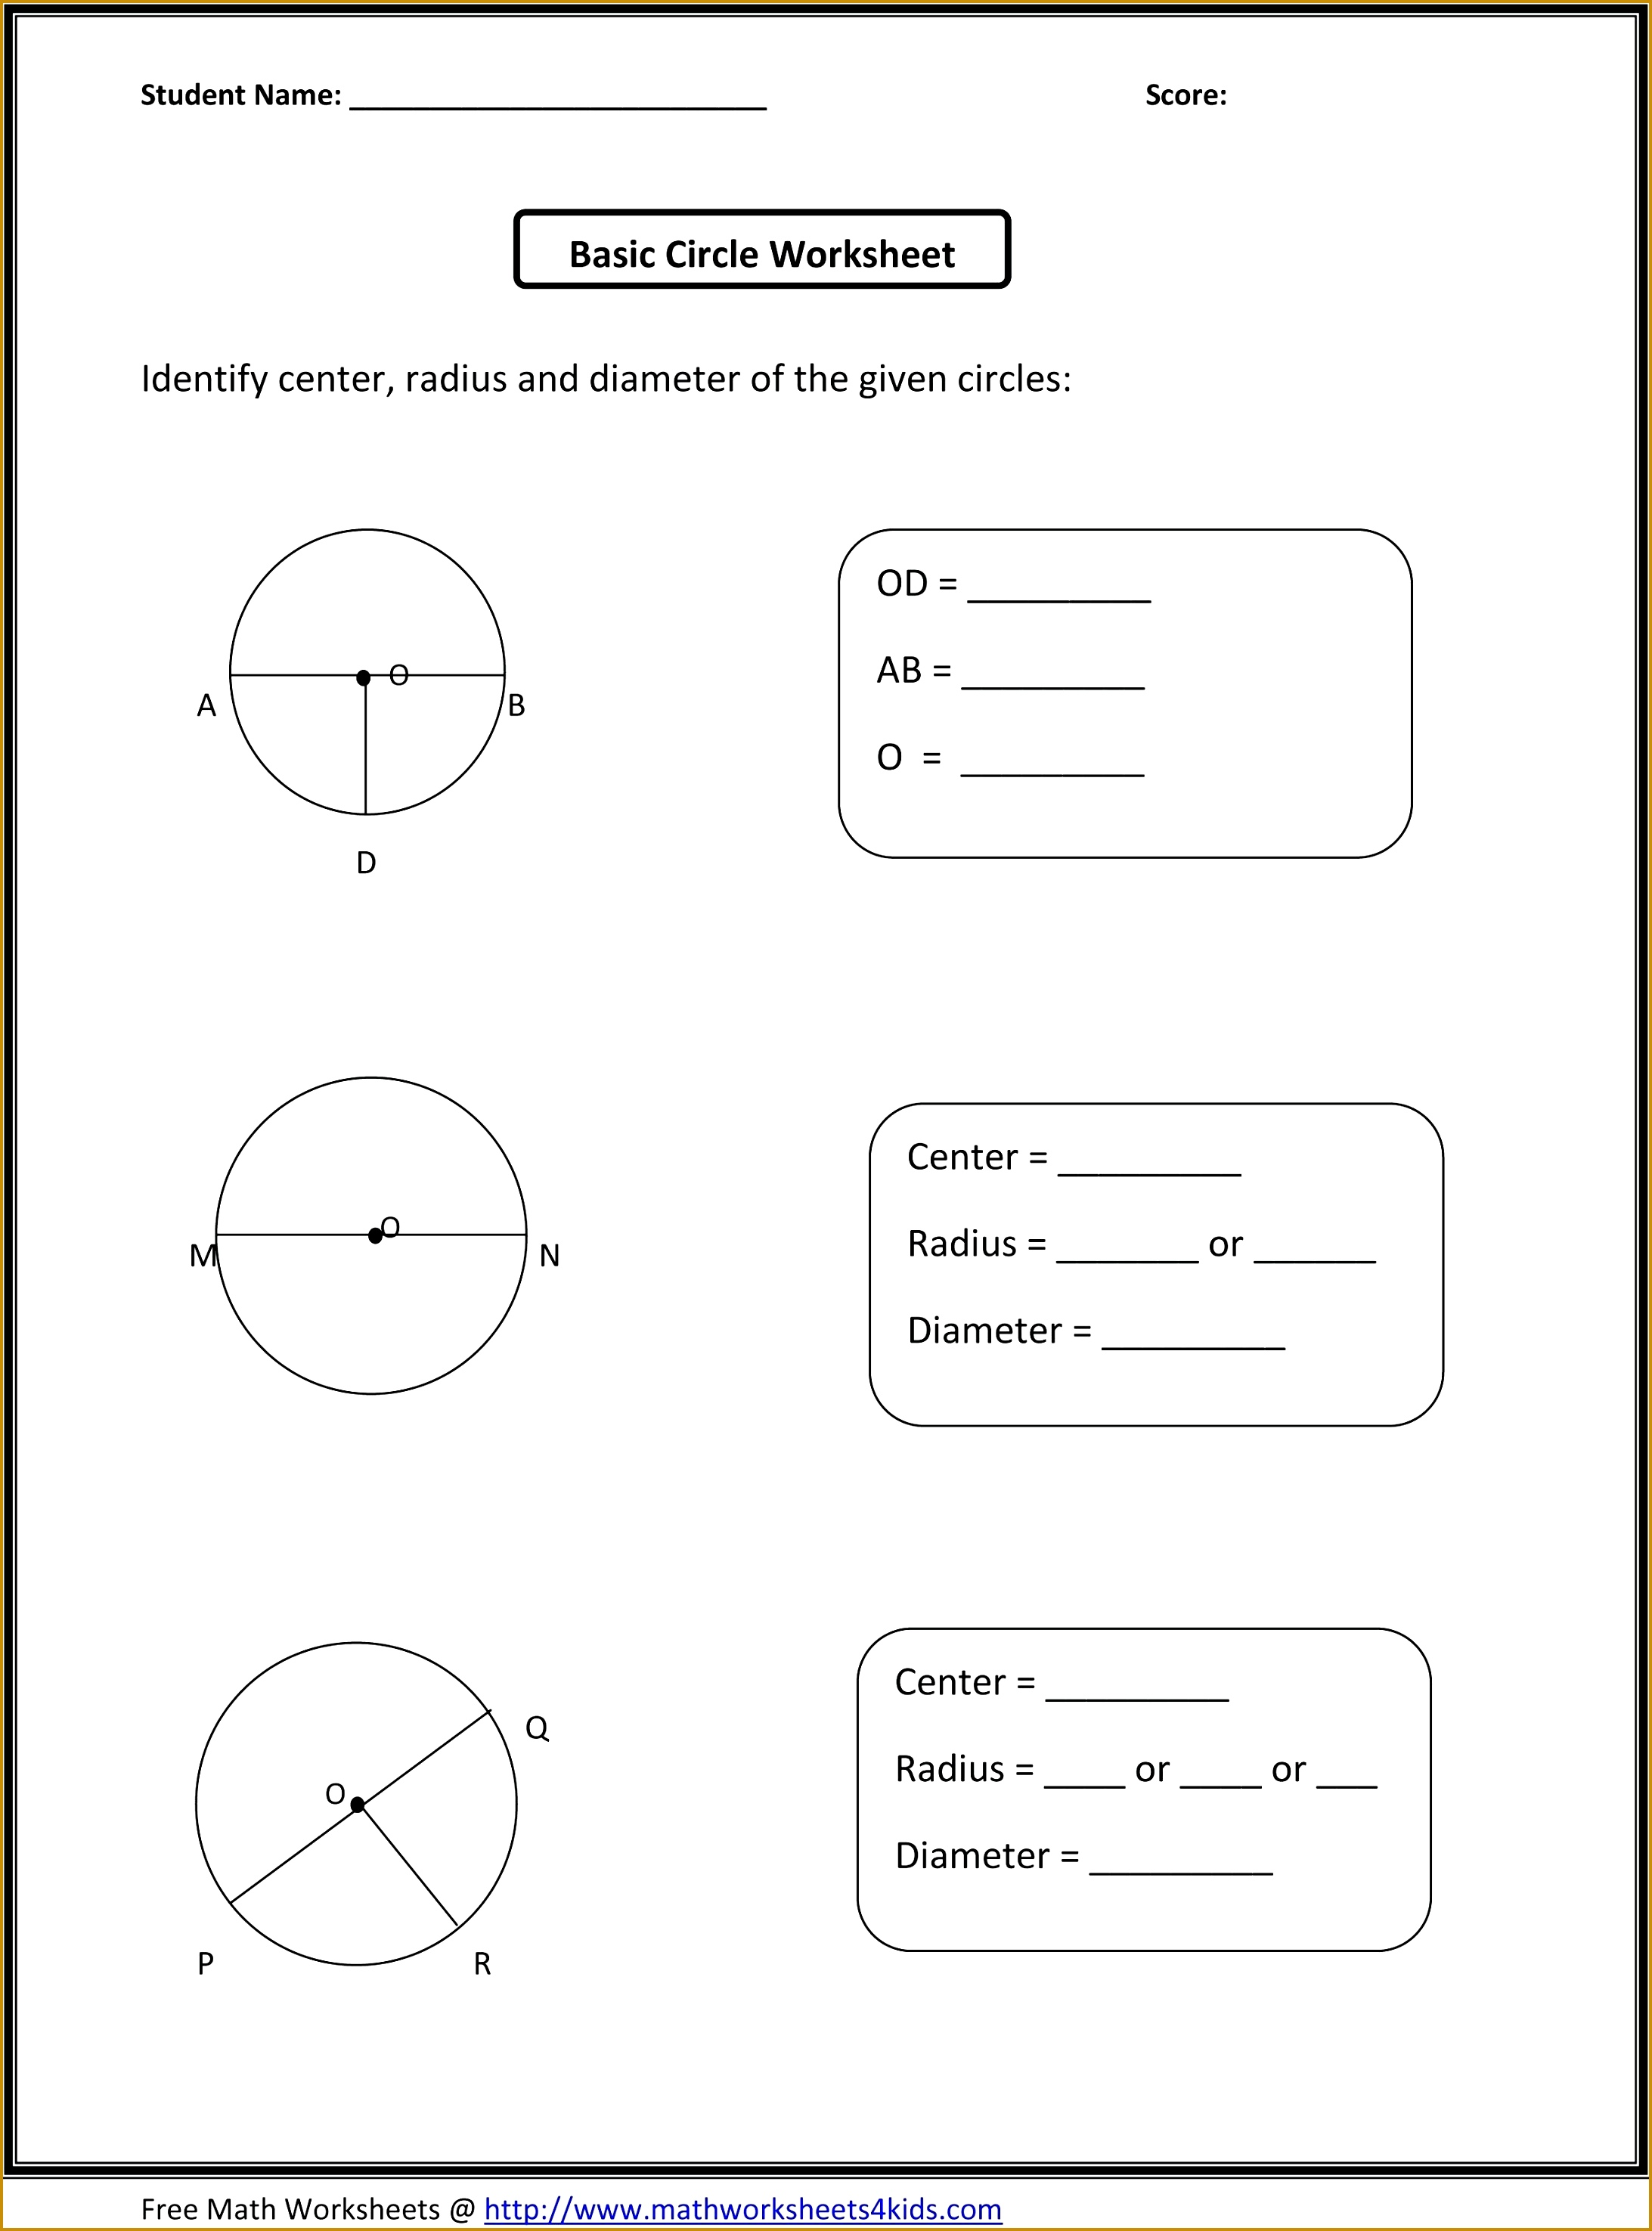 4 Classifying Triangles Worksheet